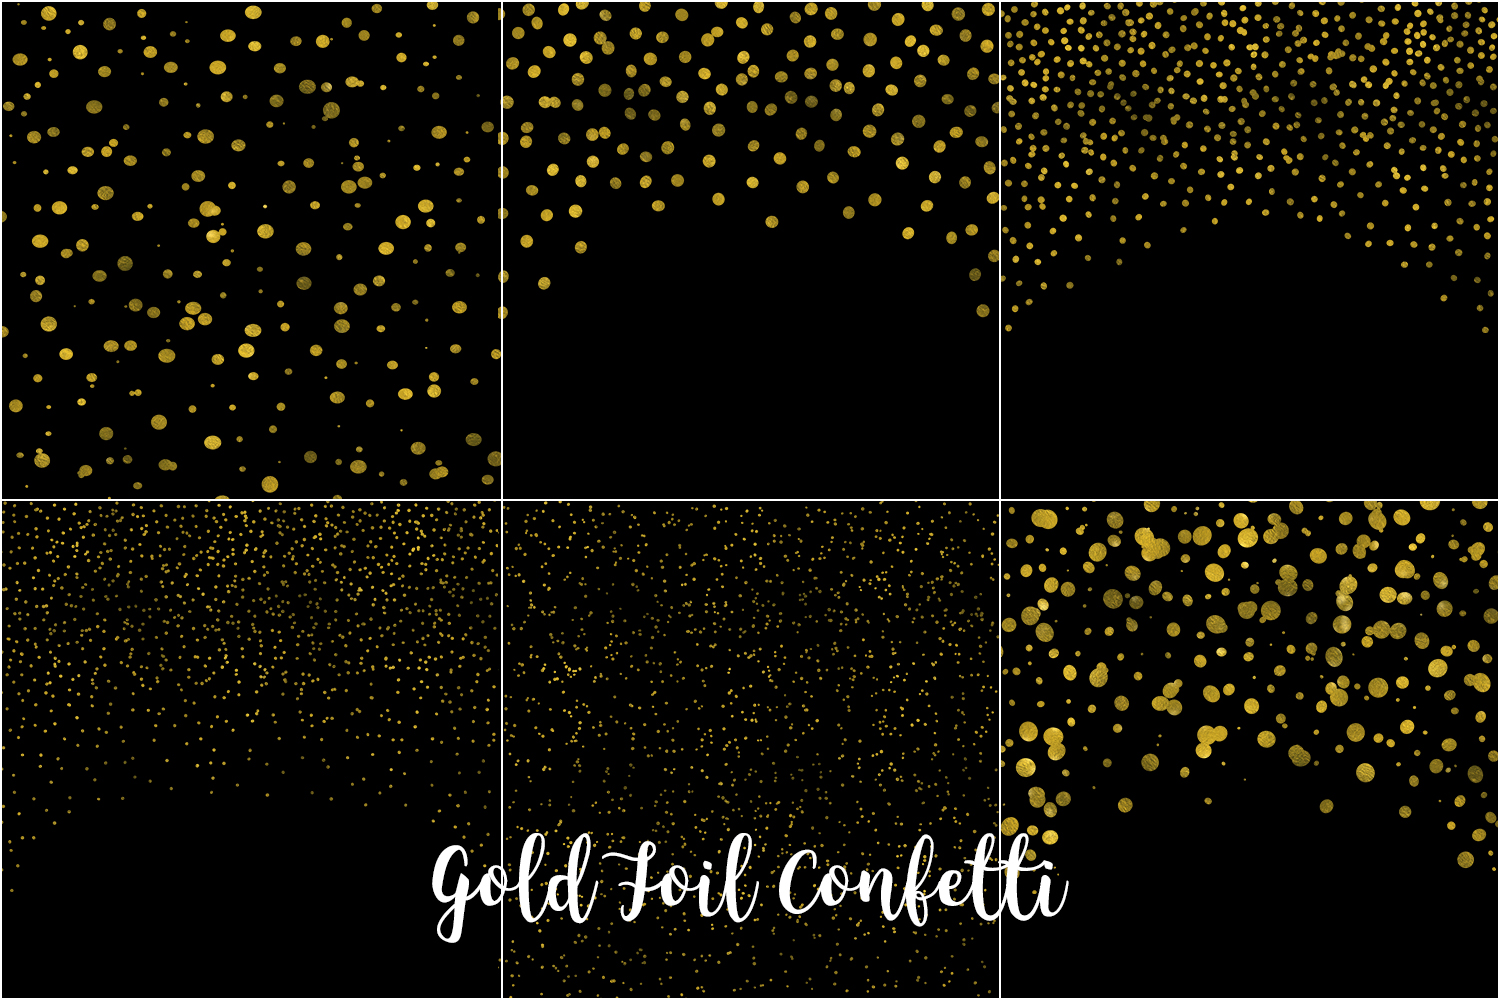 Gold Foil Confetti, Transparent PNG example image 4